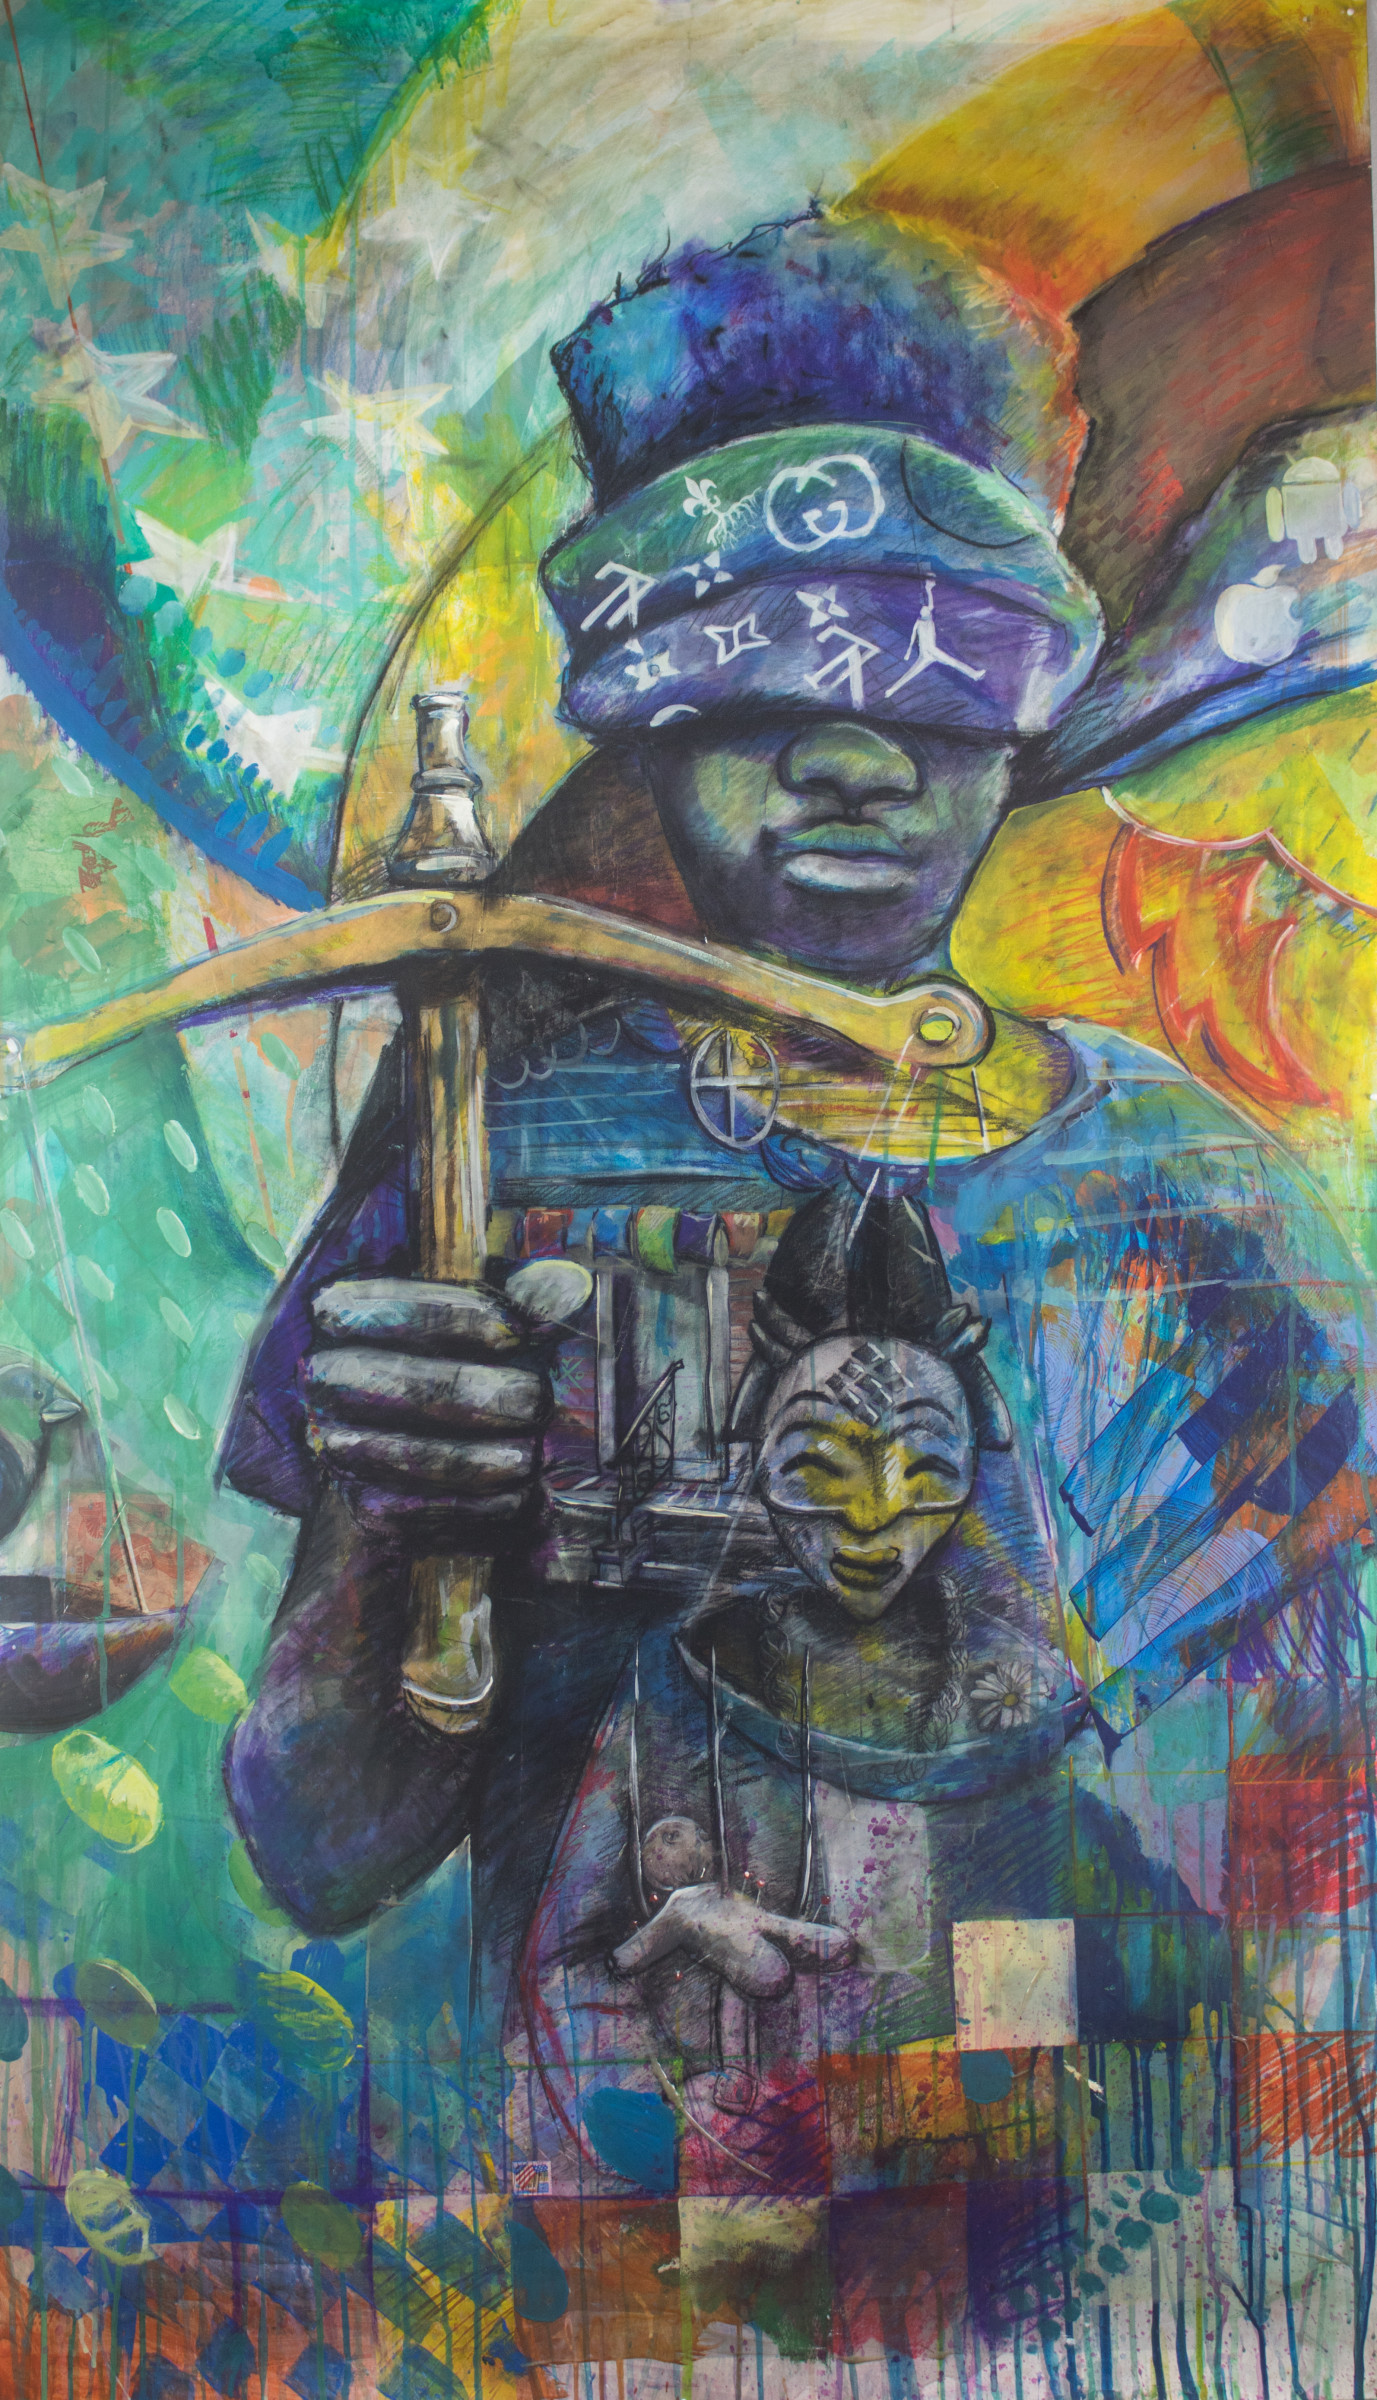 <span class=&#34;link fancybox-details-link&#34;><a href=&#34;/artworks/98-ayo-scott-a-dream-of-justice-2017/&#34;>View Detail Page</a></span><div class=&#34;artist&#34;><strong>Ayo Scott</strong></div> <div class=&#34;title&#34;><em>A Dream of Justice</em>, 2017</div> <div class=&#34;medium&#34;>Digital Drawing and Acrylic</div> <div class=&#34;dimensions&#34;>62 x 36 in<br /> 157.5 x 91.4 cm</div><div class=&#34;price&#34;>$3,700.00</div><div class=&#34;copyright_line&#34;>Copyright The Artist</div>